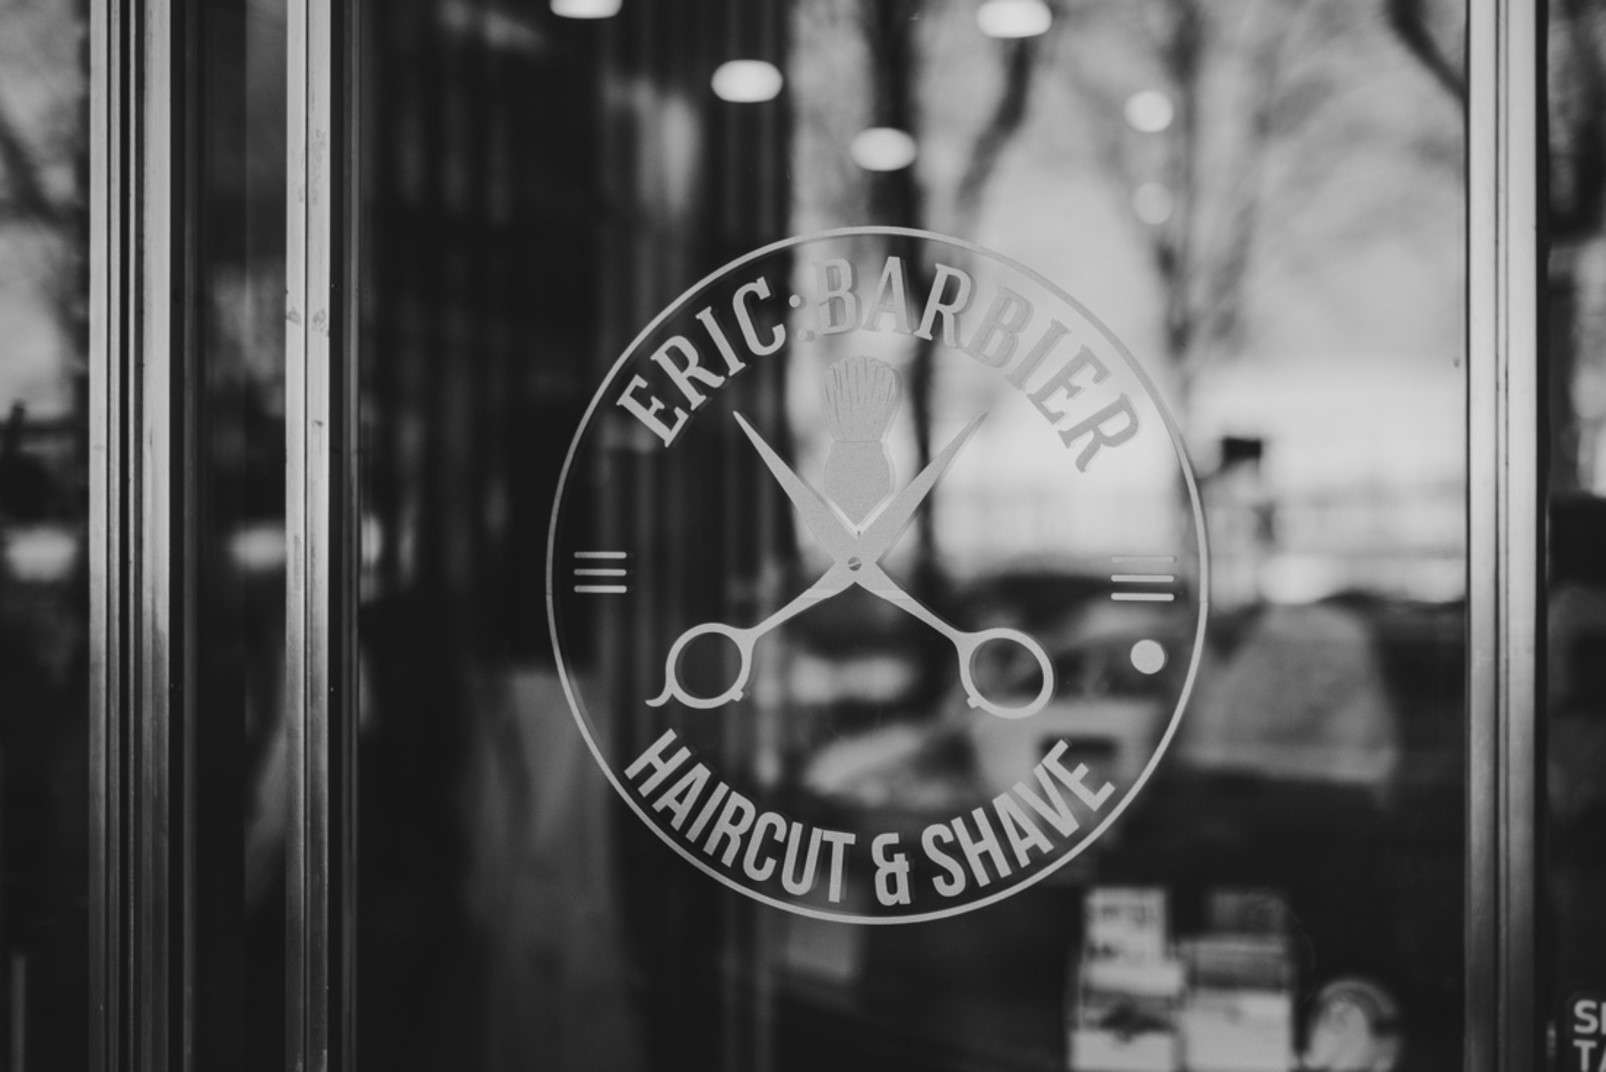 Eric:Barbier Haircut and Shave Hamburg window sticker